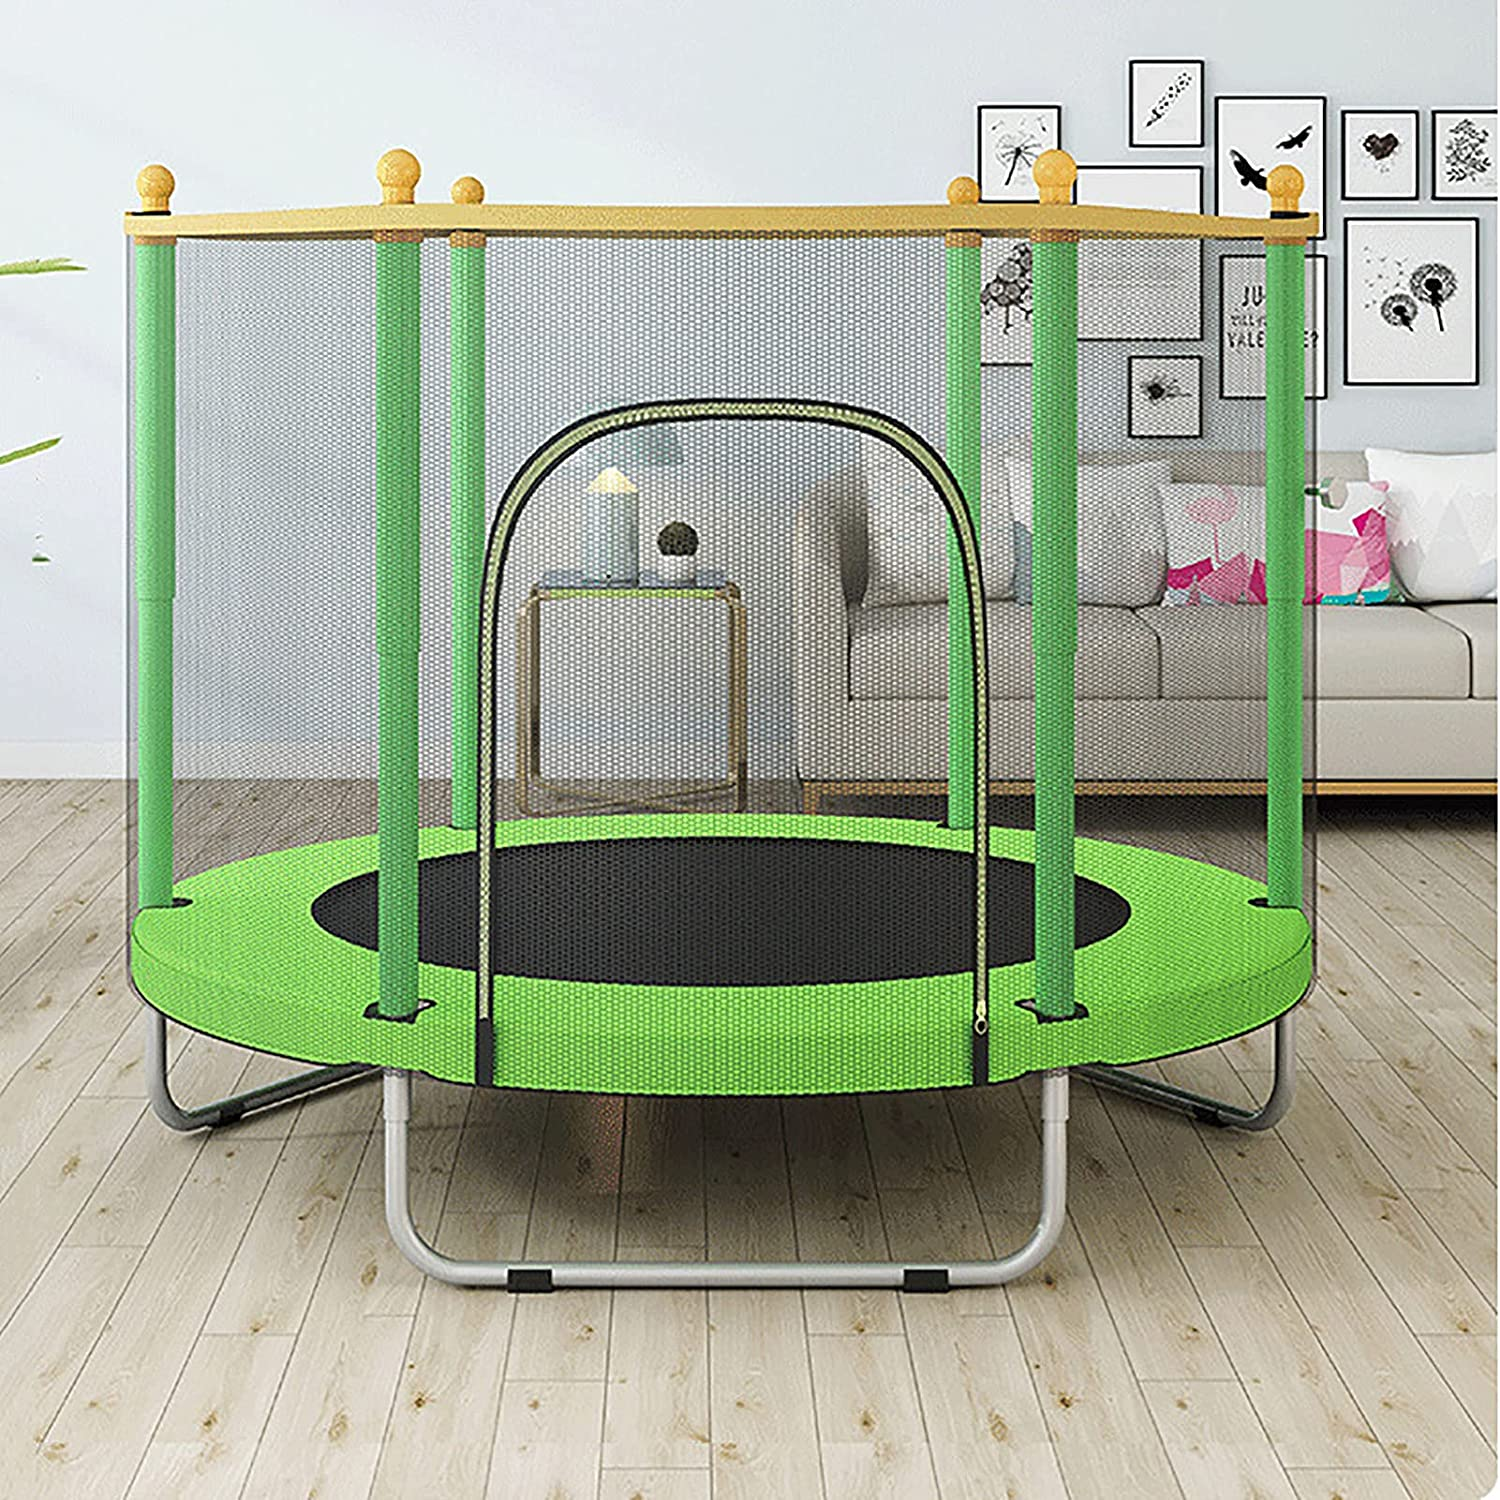 Free shipping anywhere in the nation YOGAA Outdoor Trampoline Popularity Kids Gardentrampoline Comp